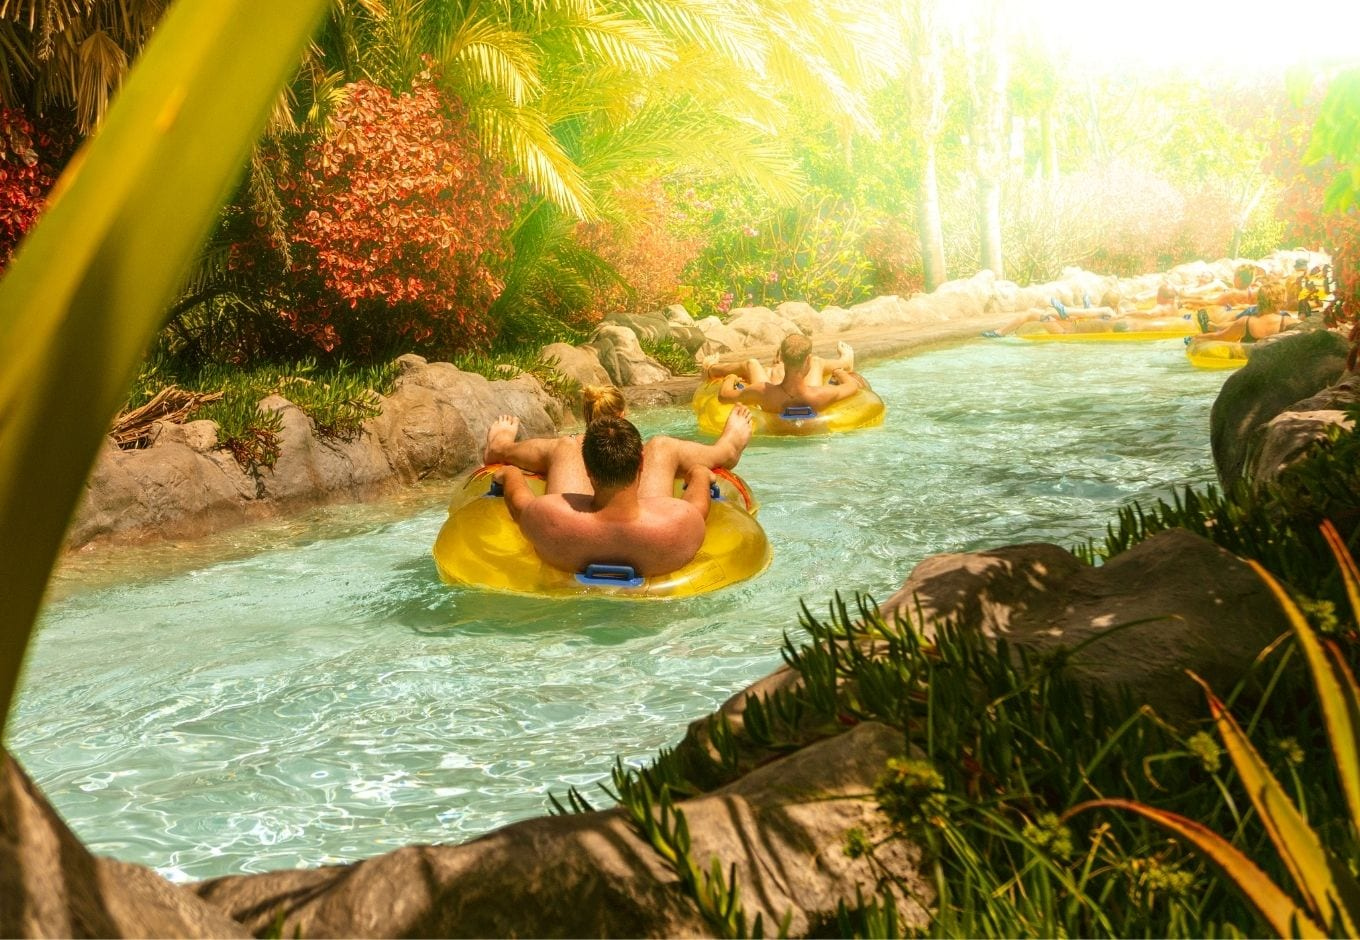 Two people on the lazy river at the Siam Park, Tenerife, Spain.